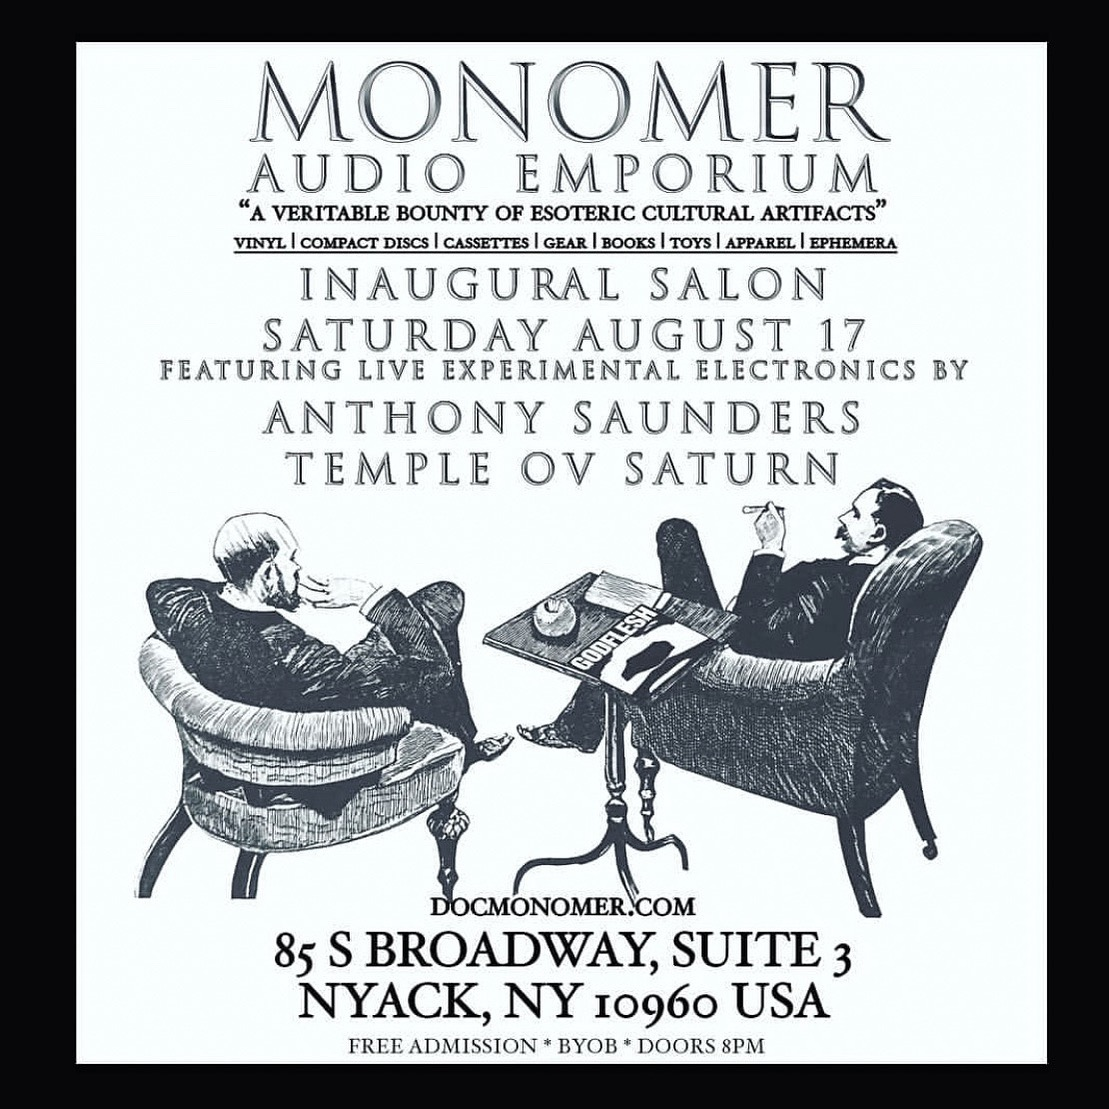 August 17 - Temple ov Saturn to perform at the opening of Monomer Audio Emporium